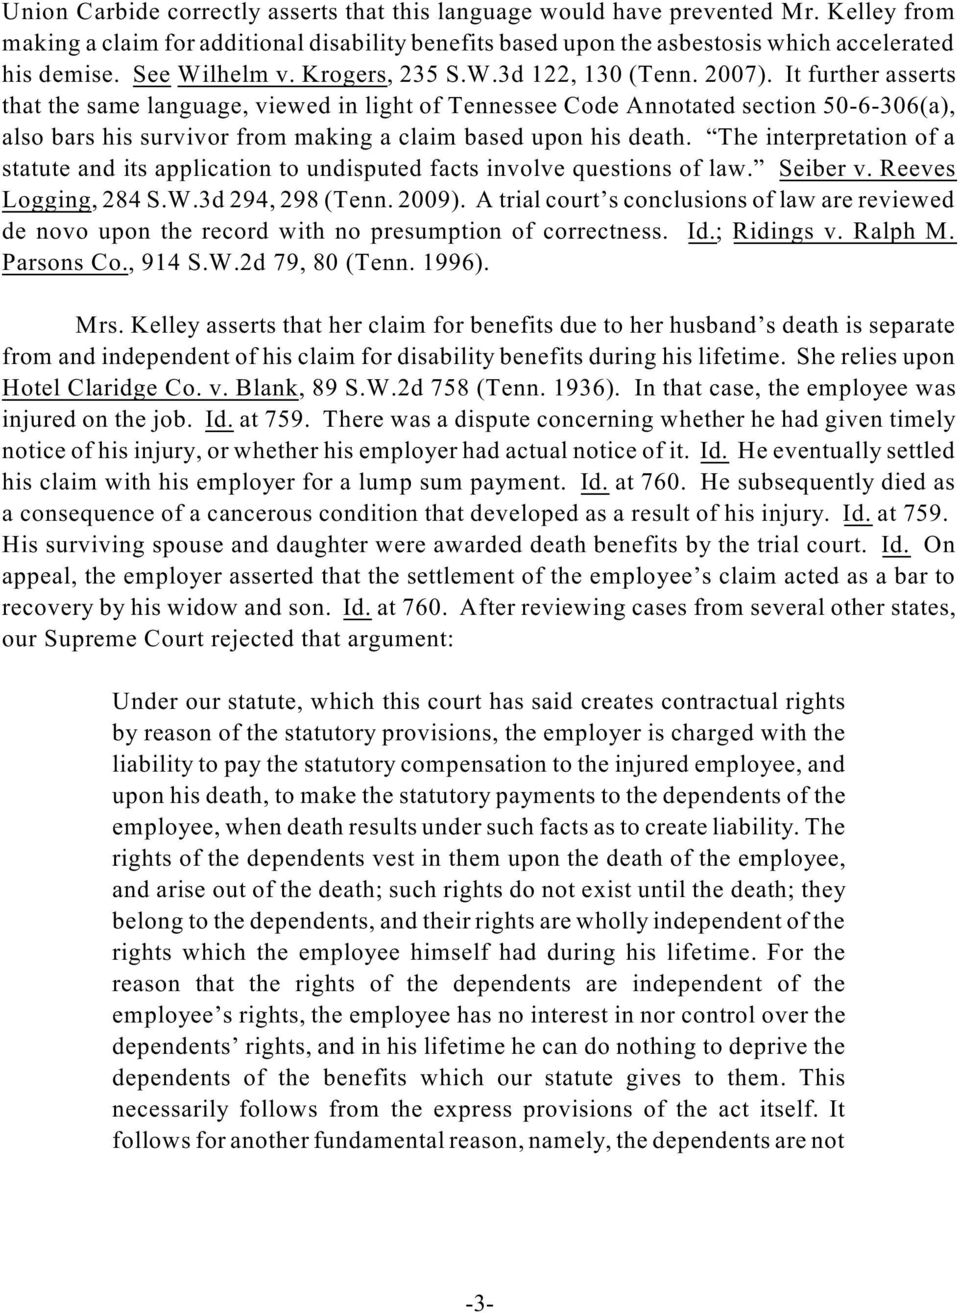 It further asserts that the same language, viewed in light of Tennessee Code Annotated section 50-6-306(a), also bars his survivor from making a claim based upon his death.